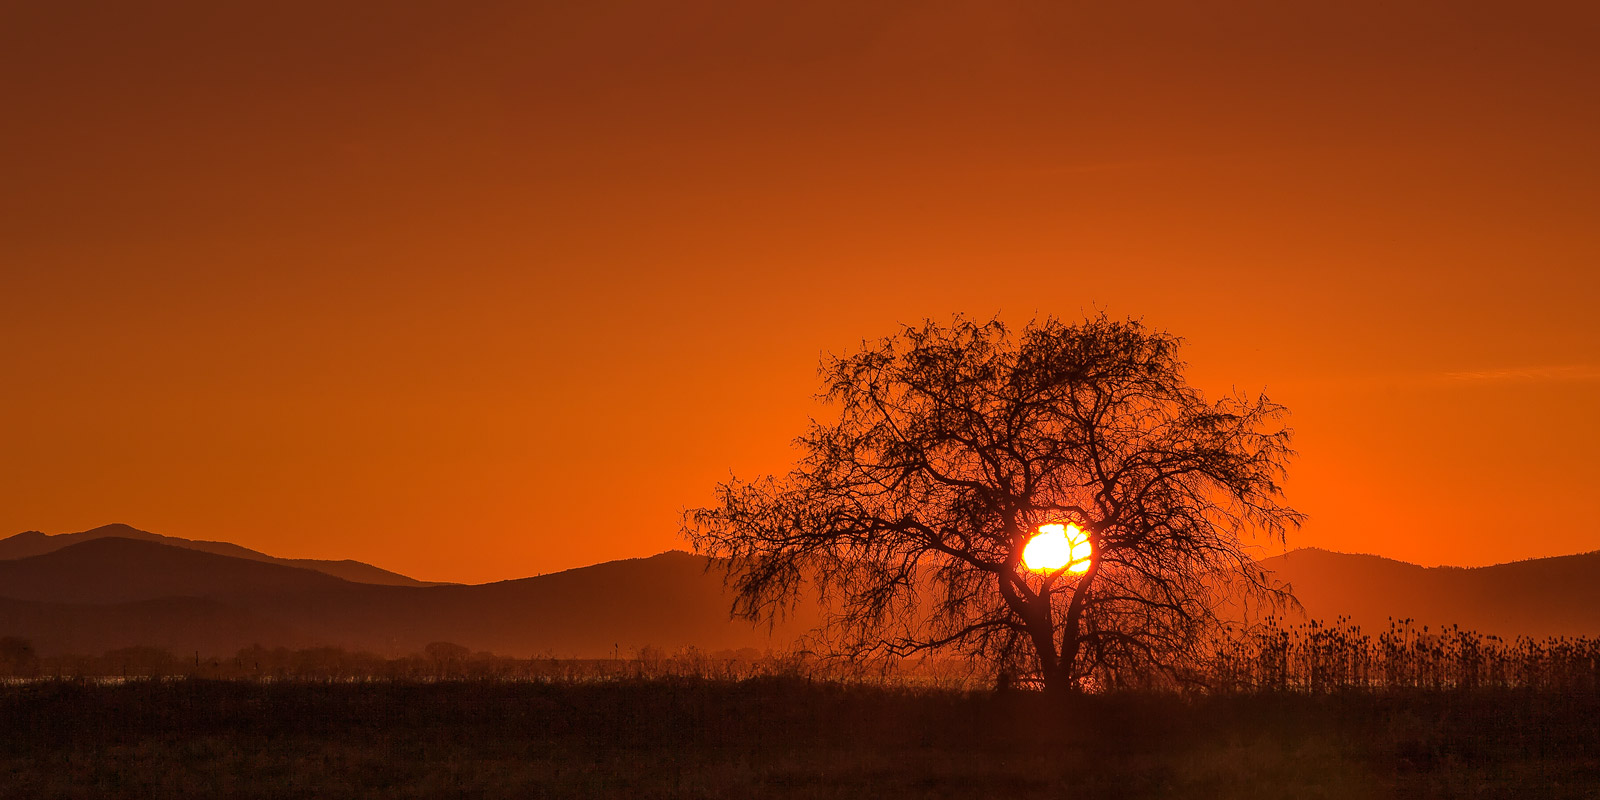 A Limited Edition, Fine Art photograph of a firey sunset with the sun ball behind a barren tree in the Mission Mountain Range...